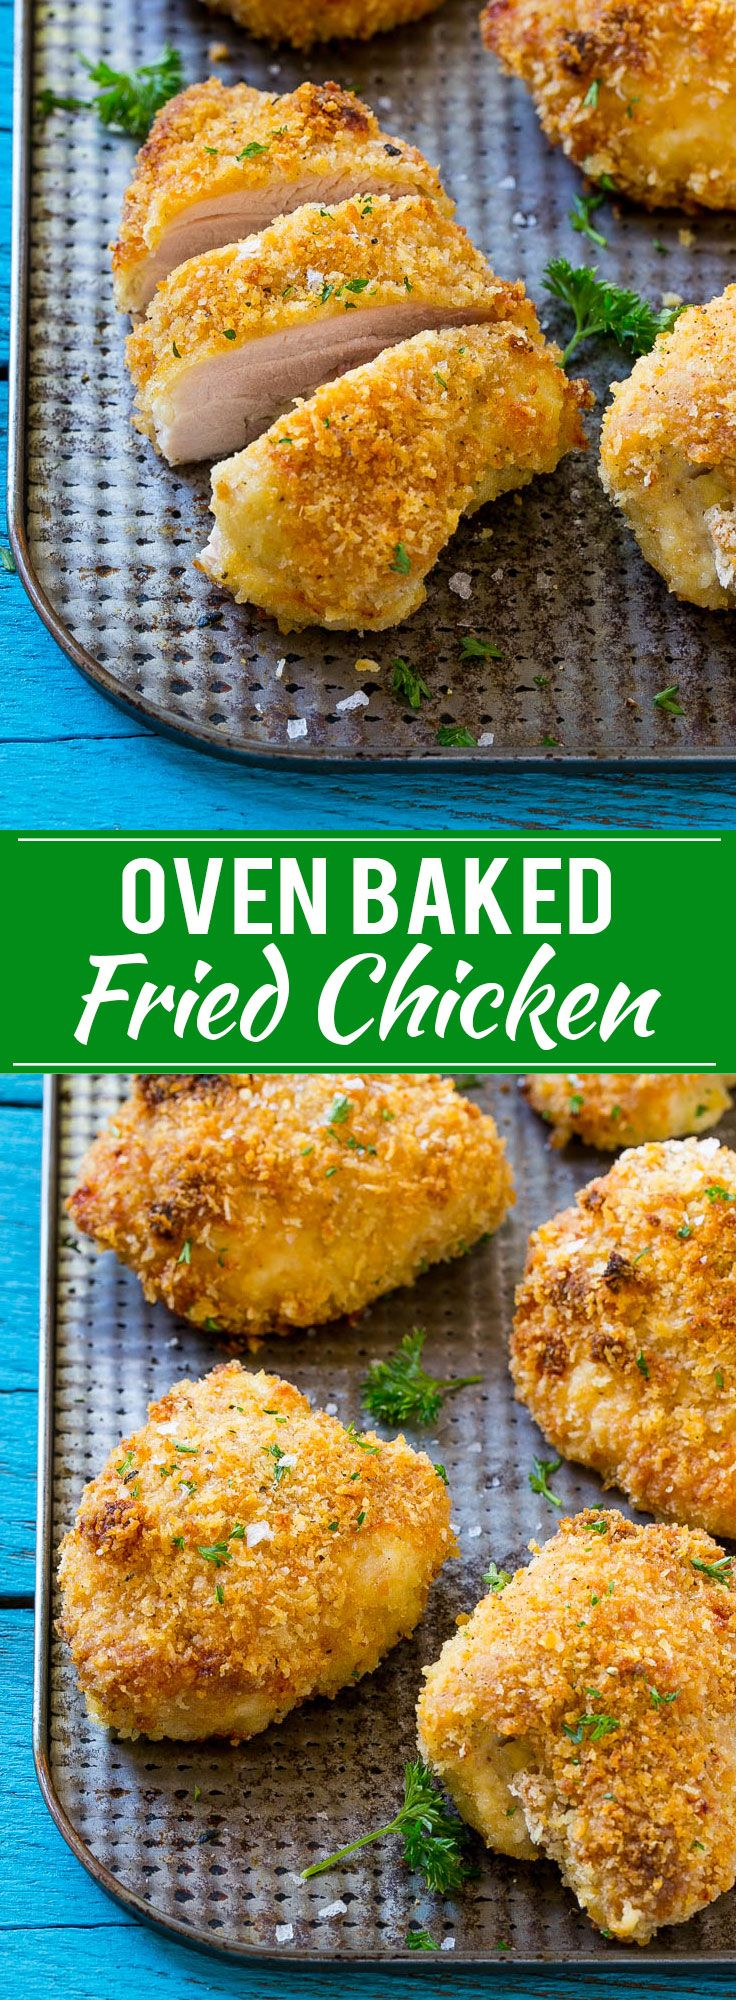 This recipe for baked fried chicken is ultra crispy chicken that's been baked in the oven for a lighter take on the classic. This oven fried chicken will quickly become a family favorite! NewComfortFood AD